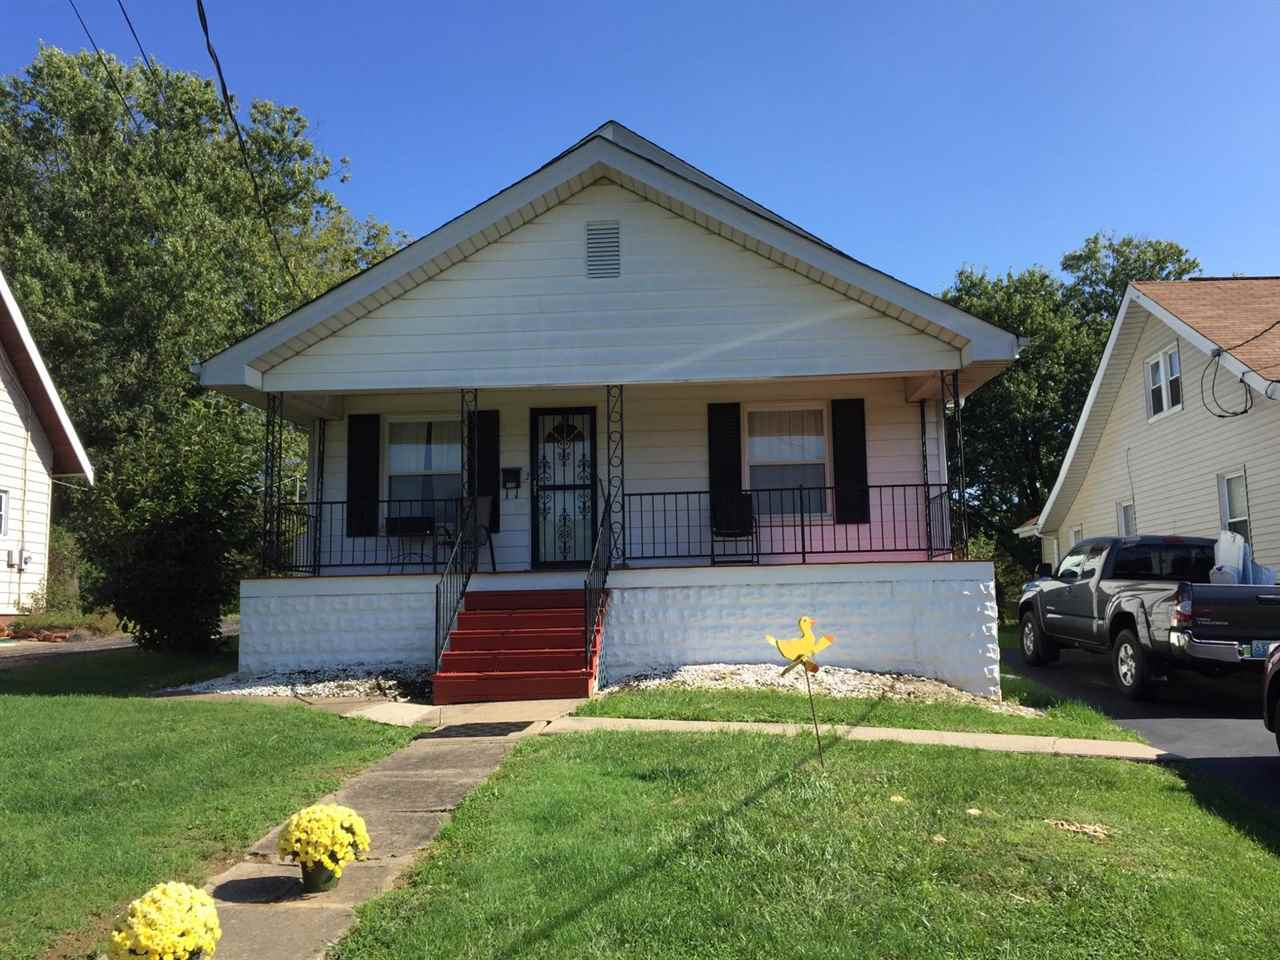 Photo 1 for 158 N Main St Walton, KY 41094